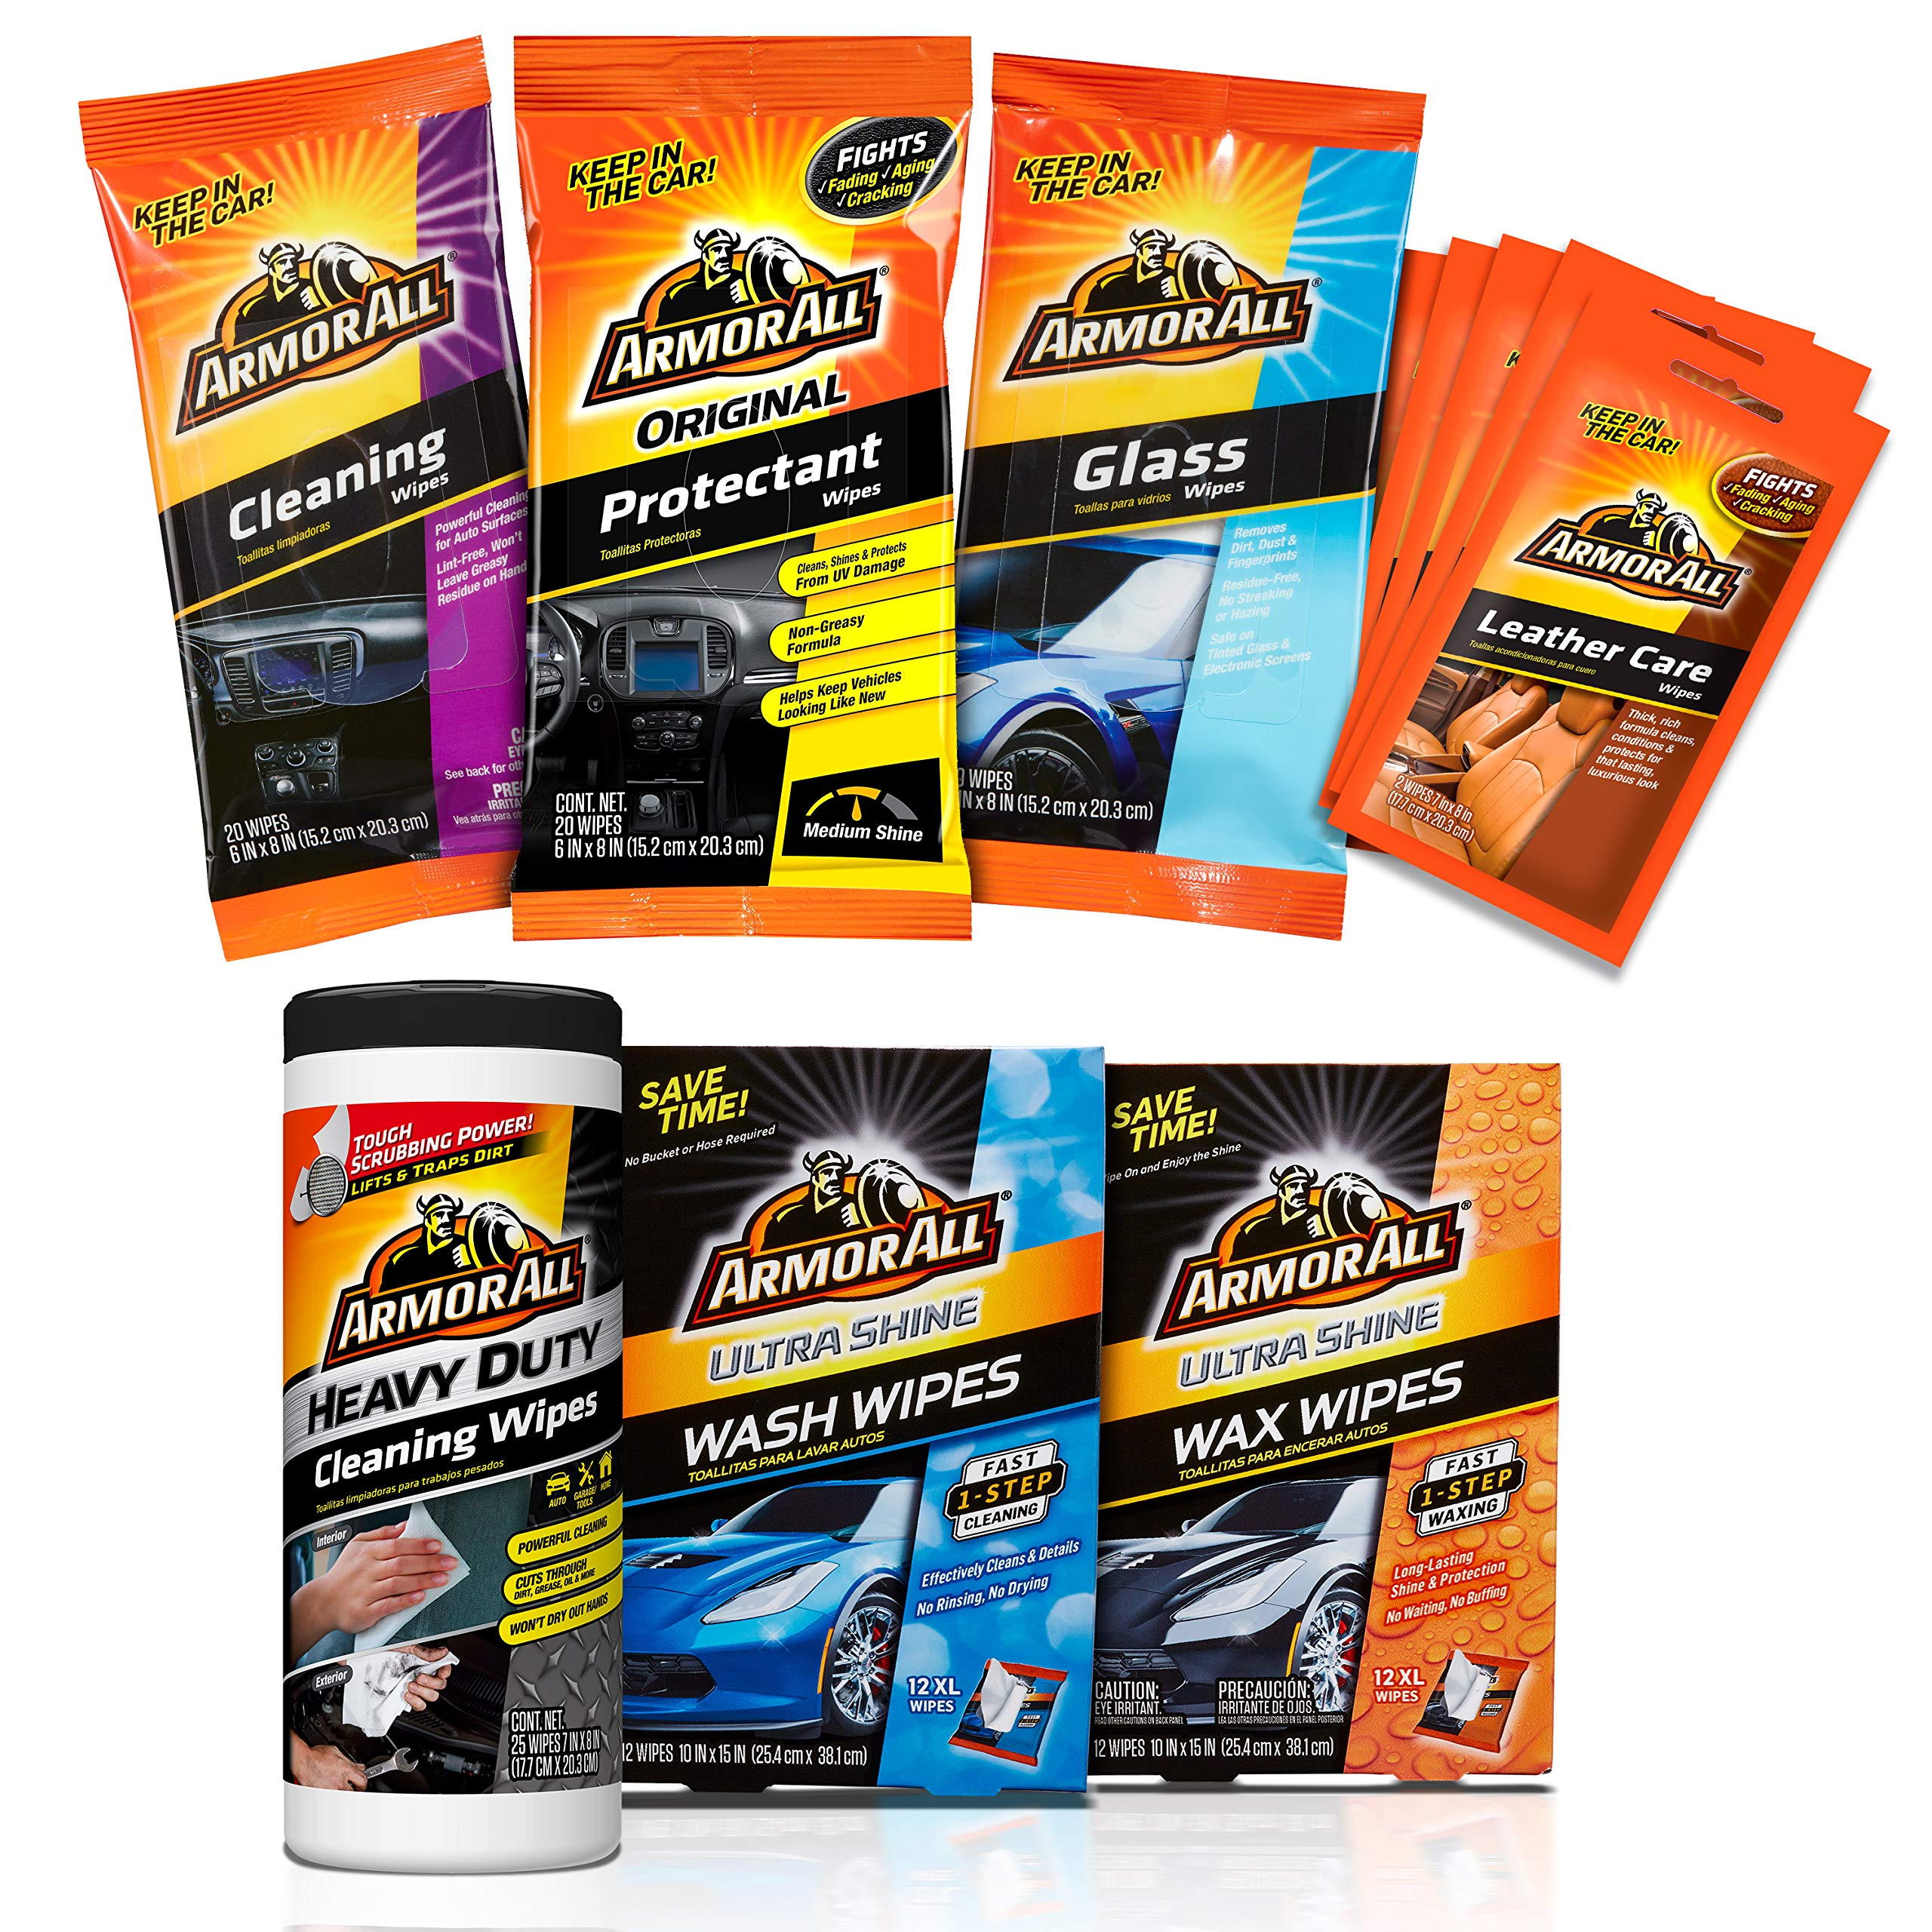 Armor All Bumper to Bumper Car Wash/Cleaning Wipes Kit